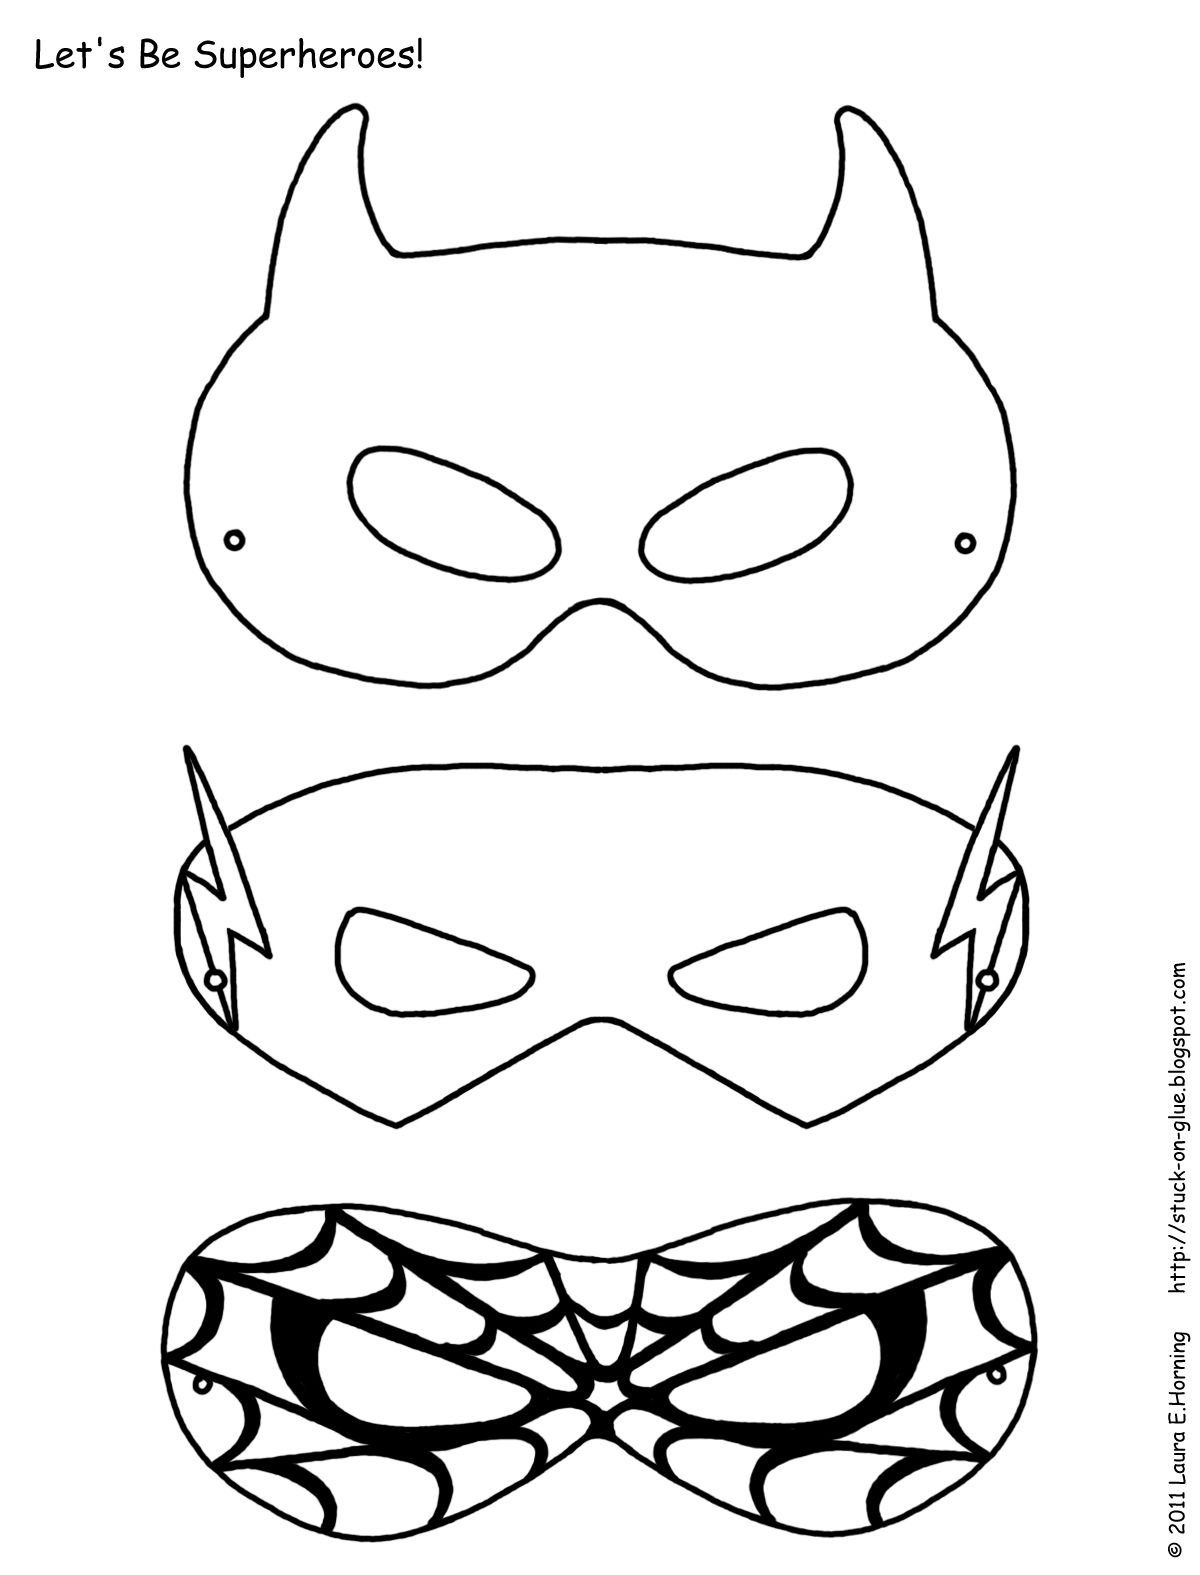 Mask Printable | Free Printable Superhero Mask Template | Masks - Free Printable Paper Masks